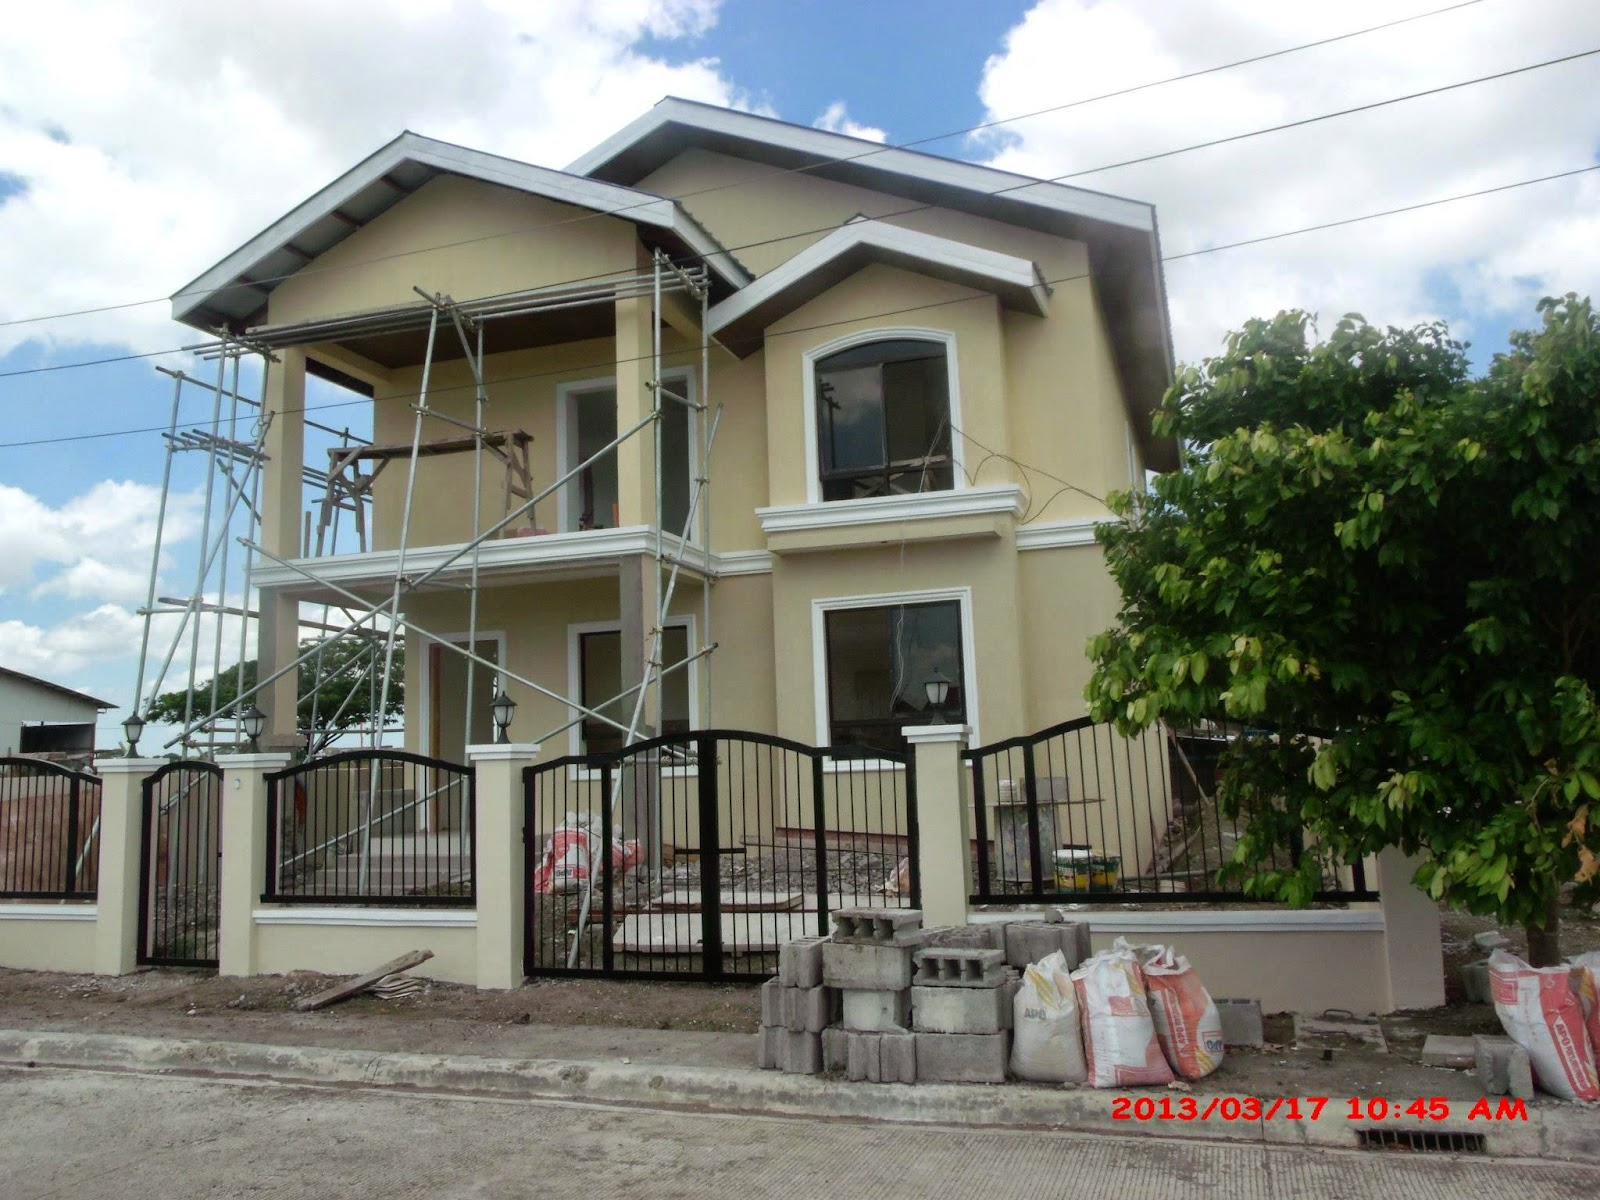 Savannah trails house construction project in oton iloilo for Philippine houses design pictures